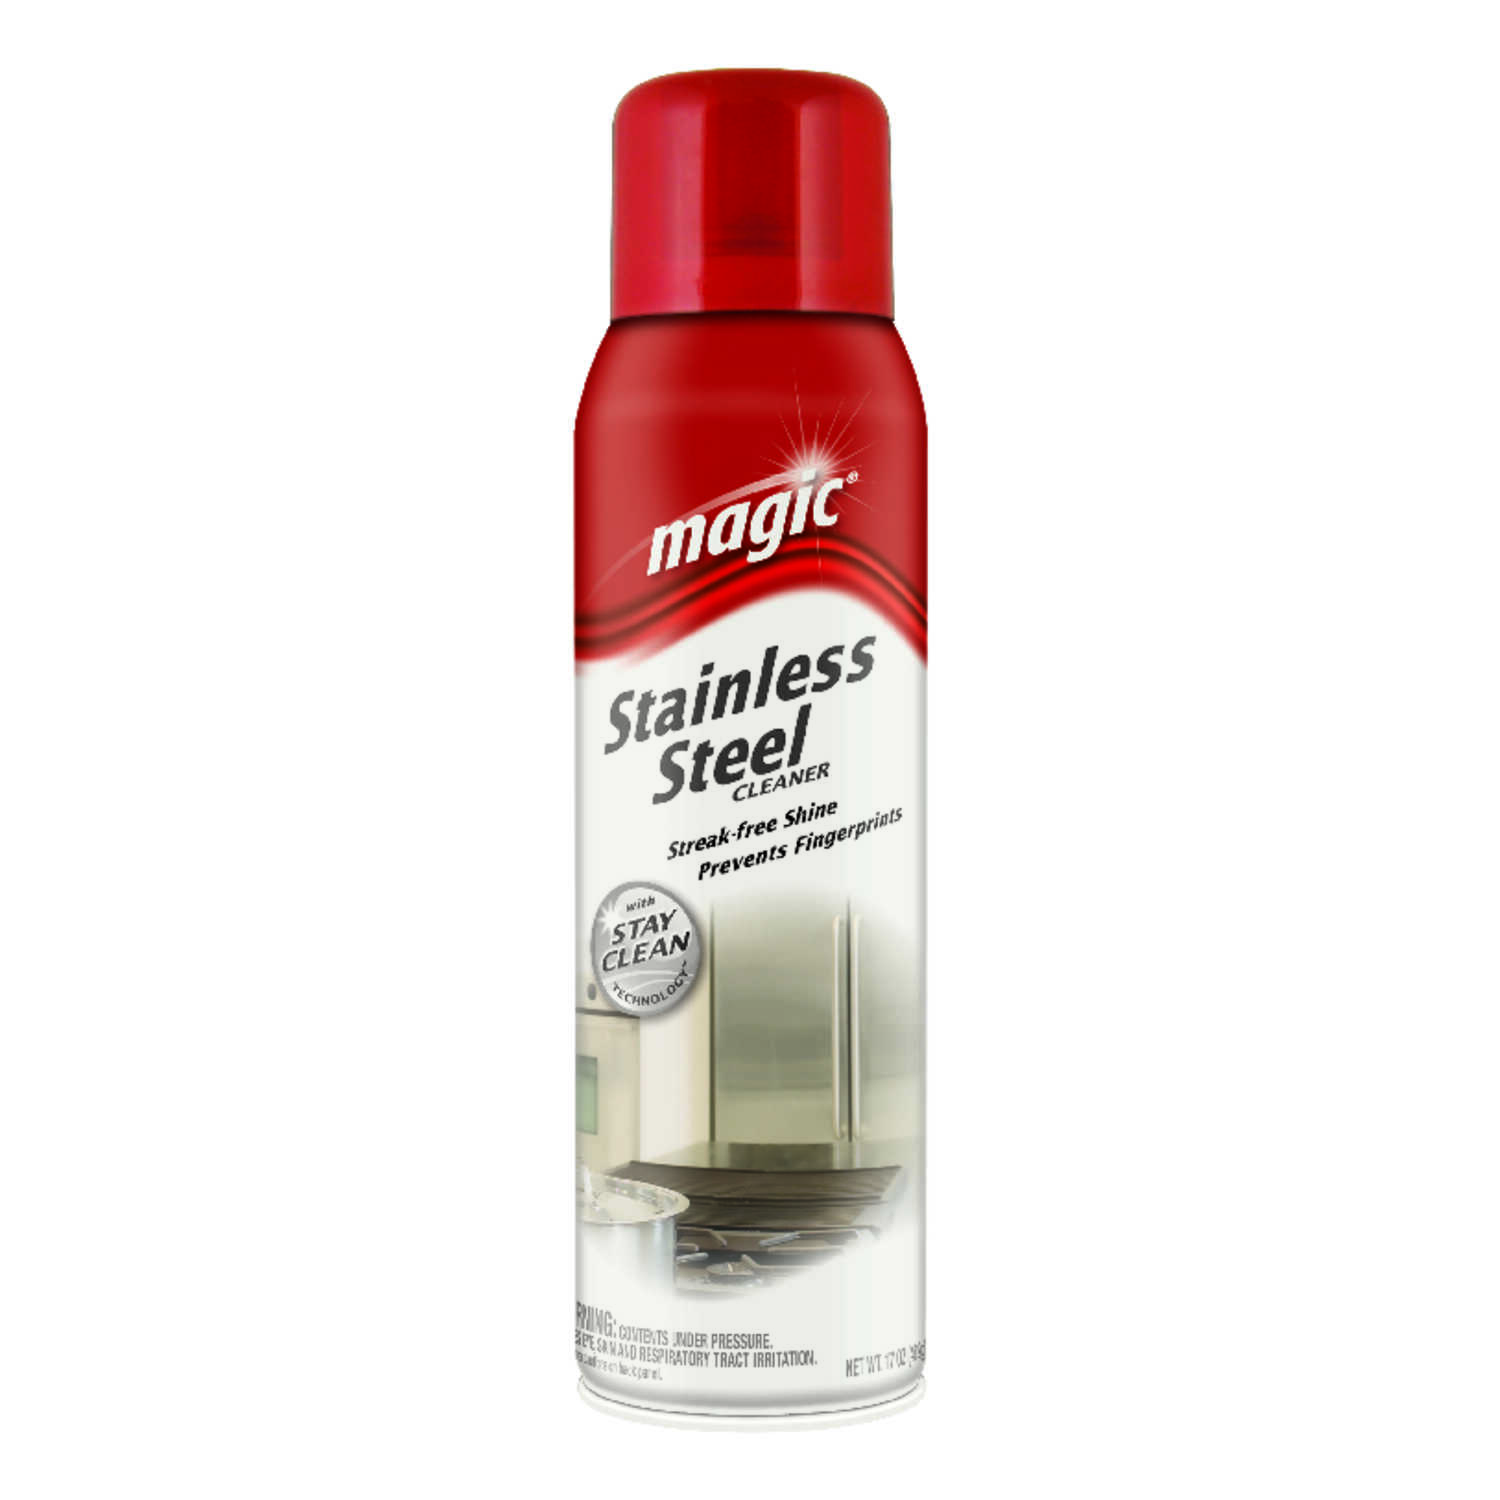 Magic  Citrus Scent Stainless Steel Cleaner & Polish  17 oz. Spray